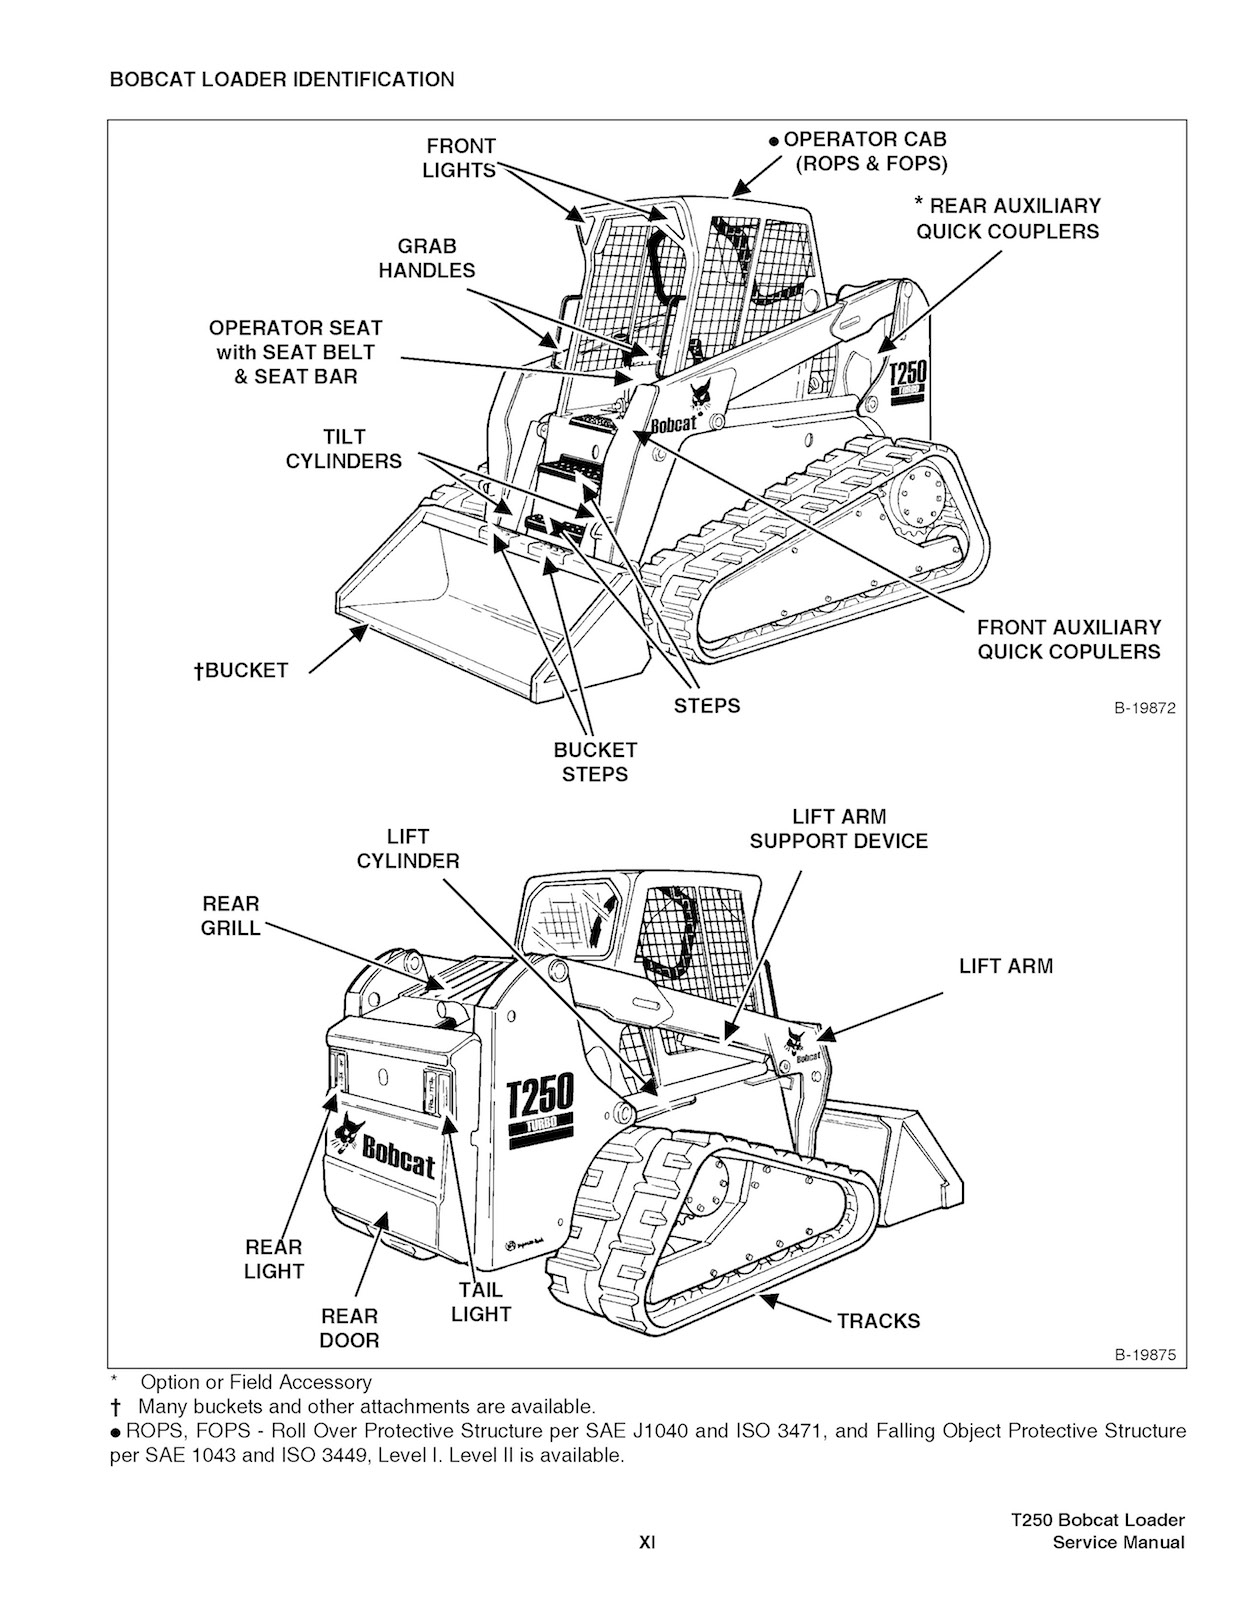 hight resolution of bobcat t250 parts diagram wiring diagram used bobcat t 250 parts catalog bobcat t250 parts diagram